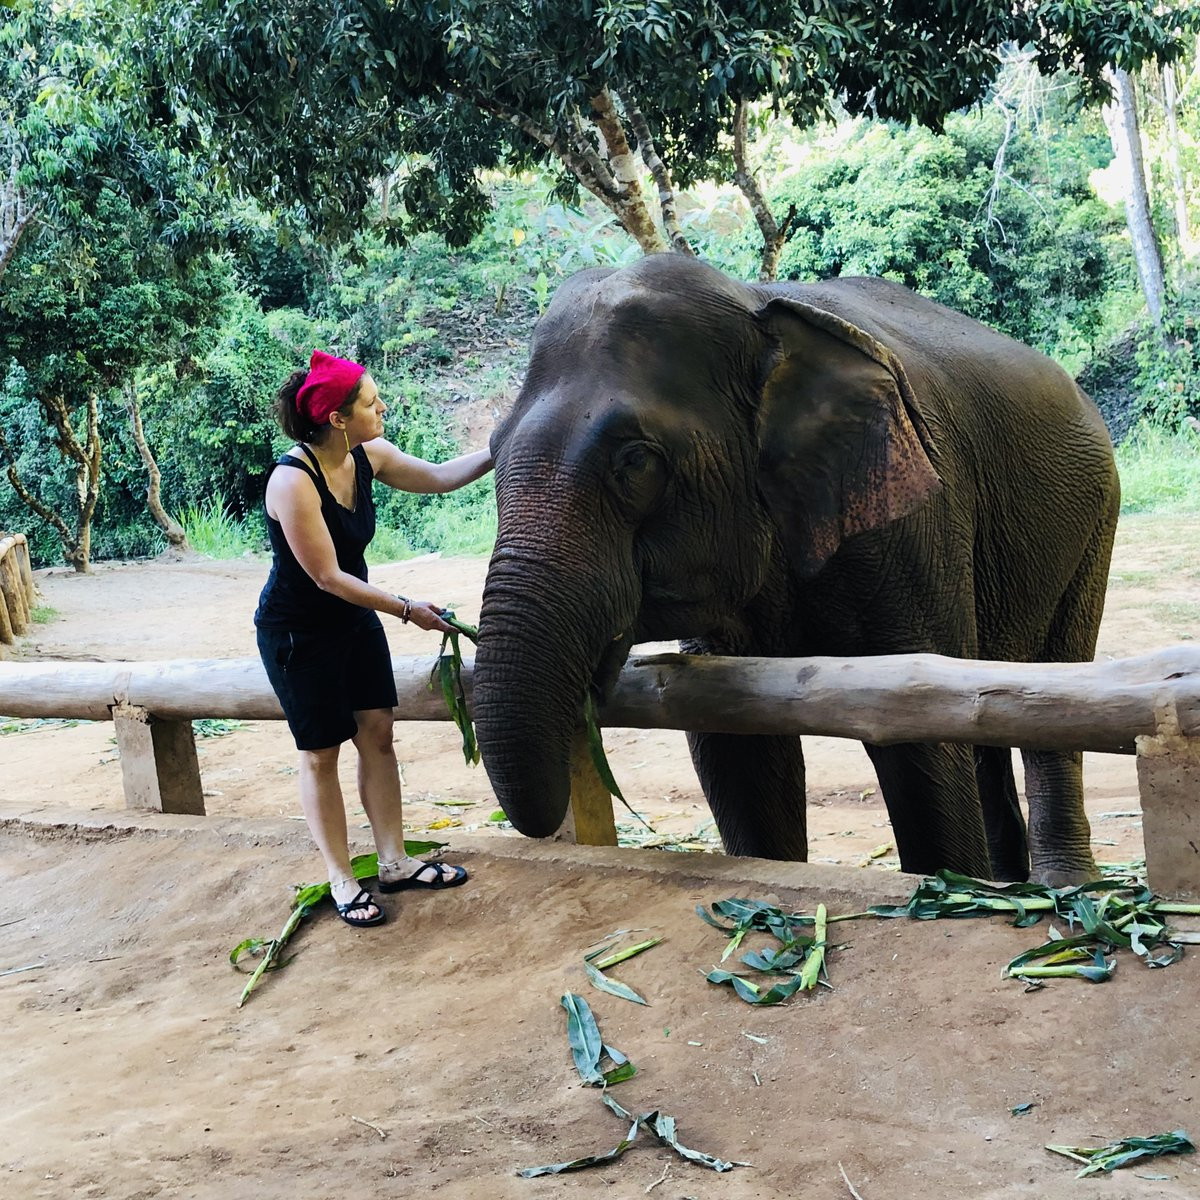 A year ago today, we visited the Toto Elephant Sanctuary in Chiang Mai, Thailand.   Learn more about this incredible experience in Episode 10 - Thailand for Indian Travelers- link in profile   #elephantsanctuary #podcast #indianpodcast #indianblogger #indiantravelpic.twitter.com/lrMAKLlSLP